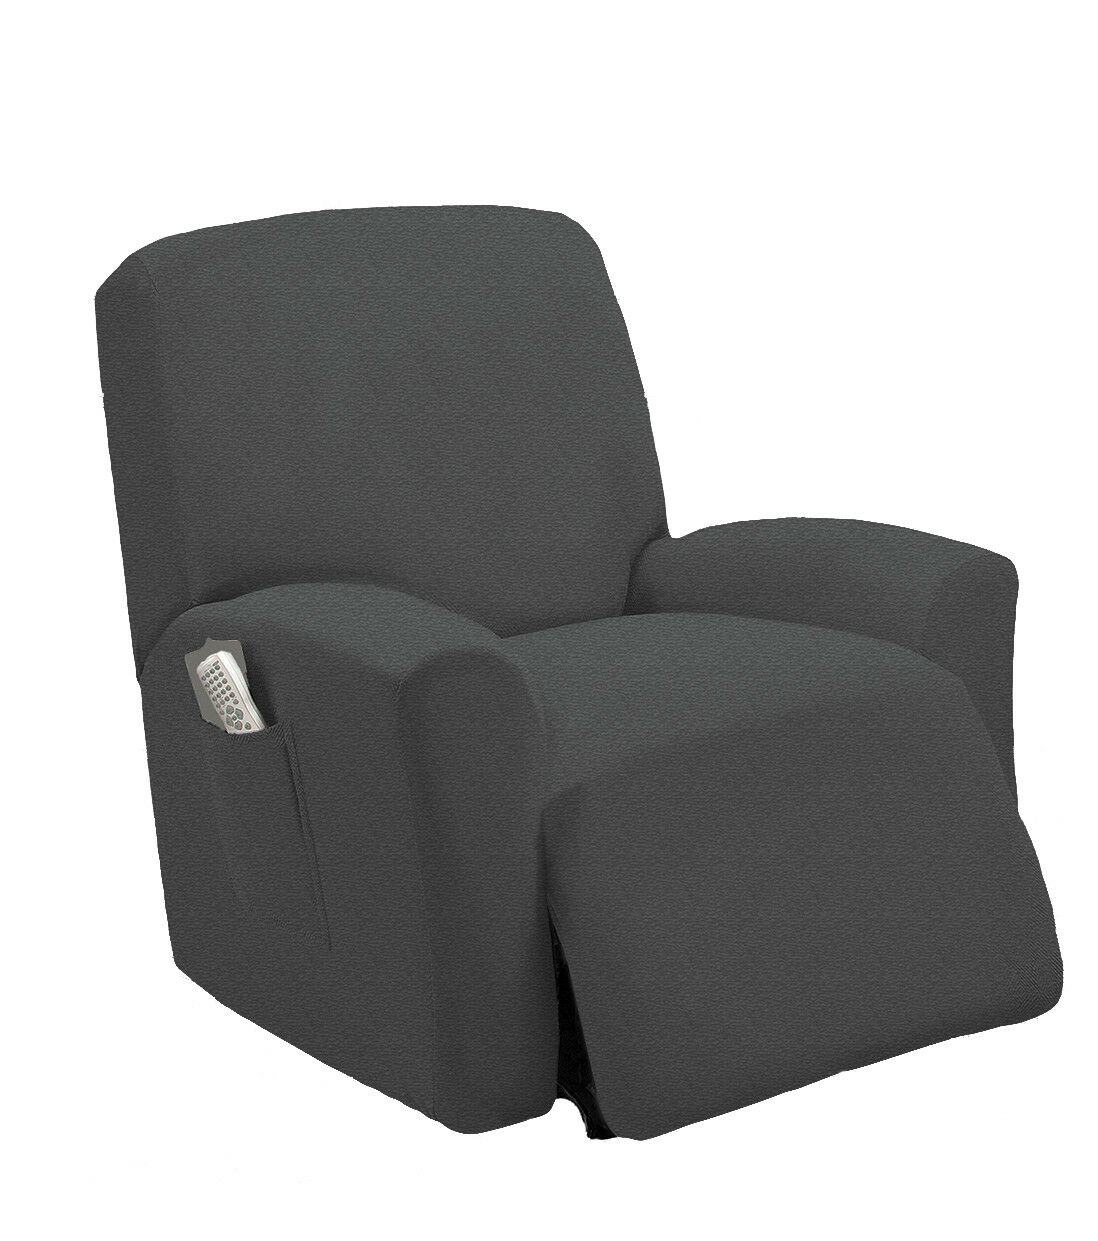 1 PC Stretch Recliner Slipcover Fit Furniture Chair Lazy Boy